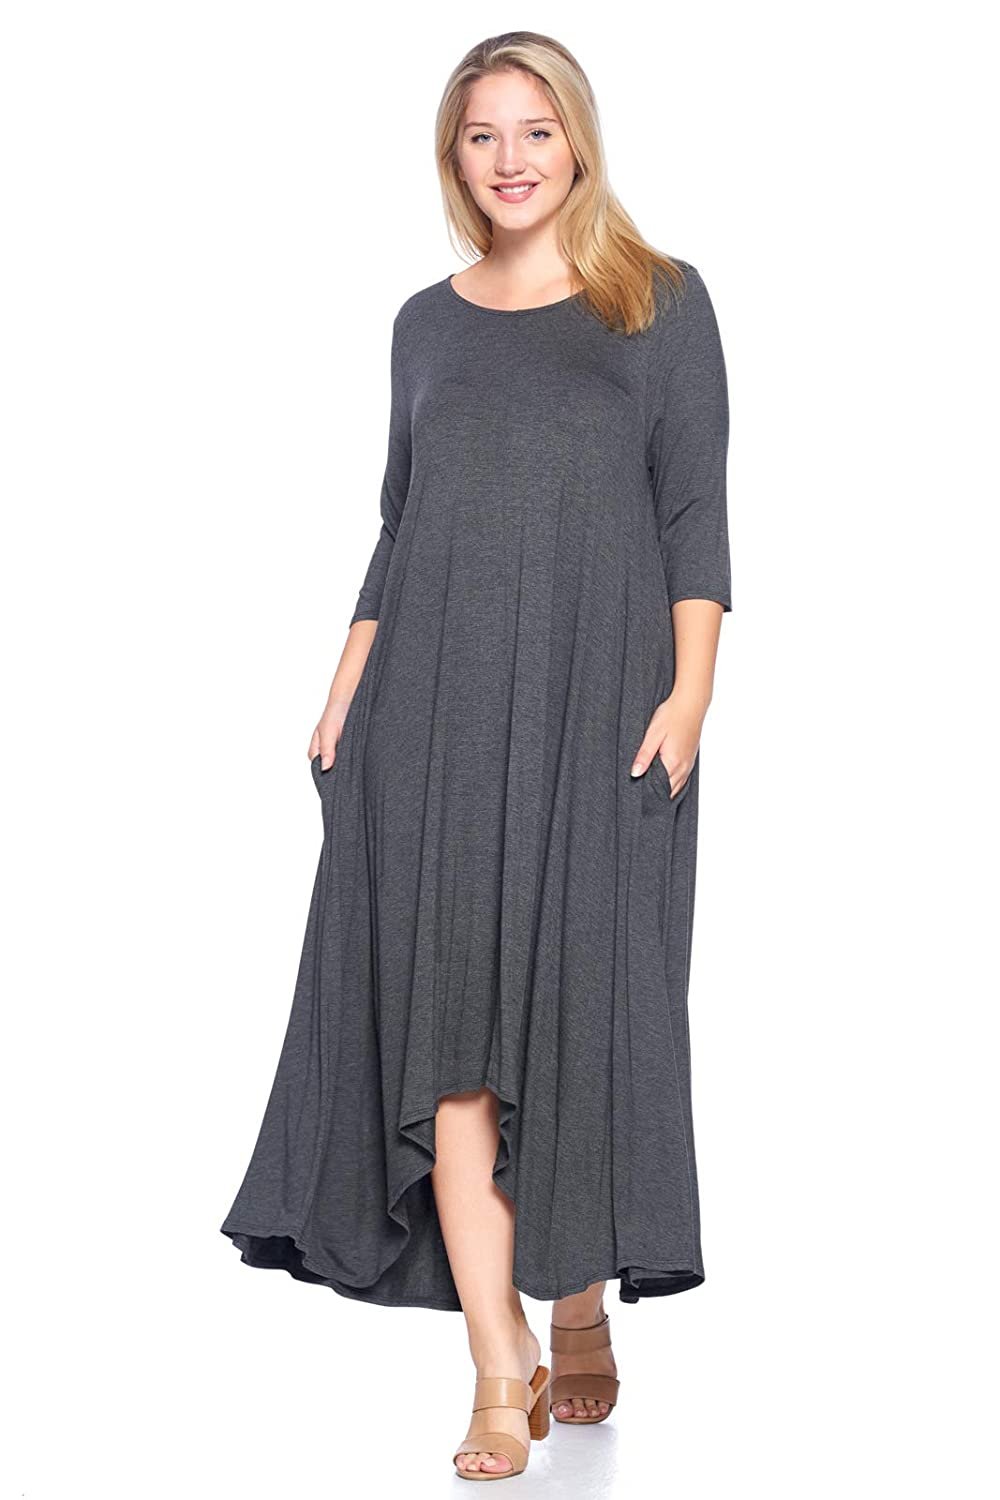 Comfy Womens Vogue Plus-size Basic Style Long-Sleeve Trapeze Dress